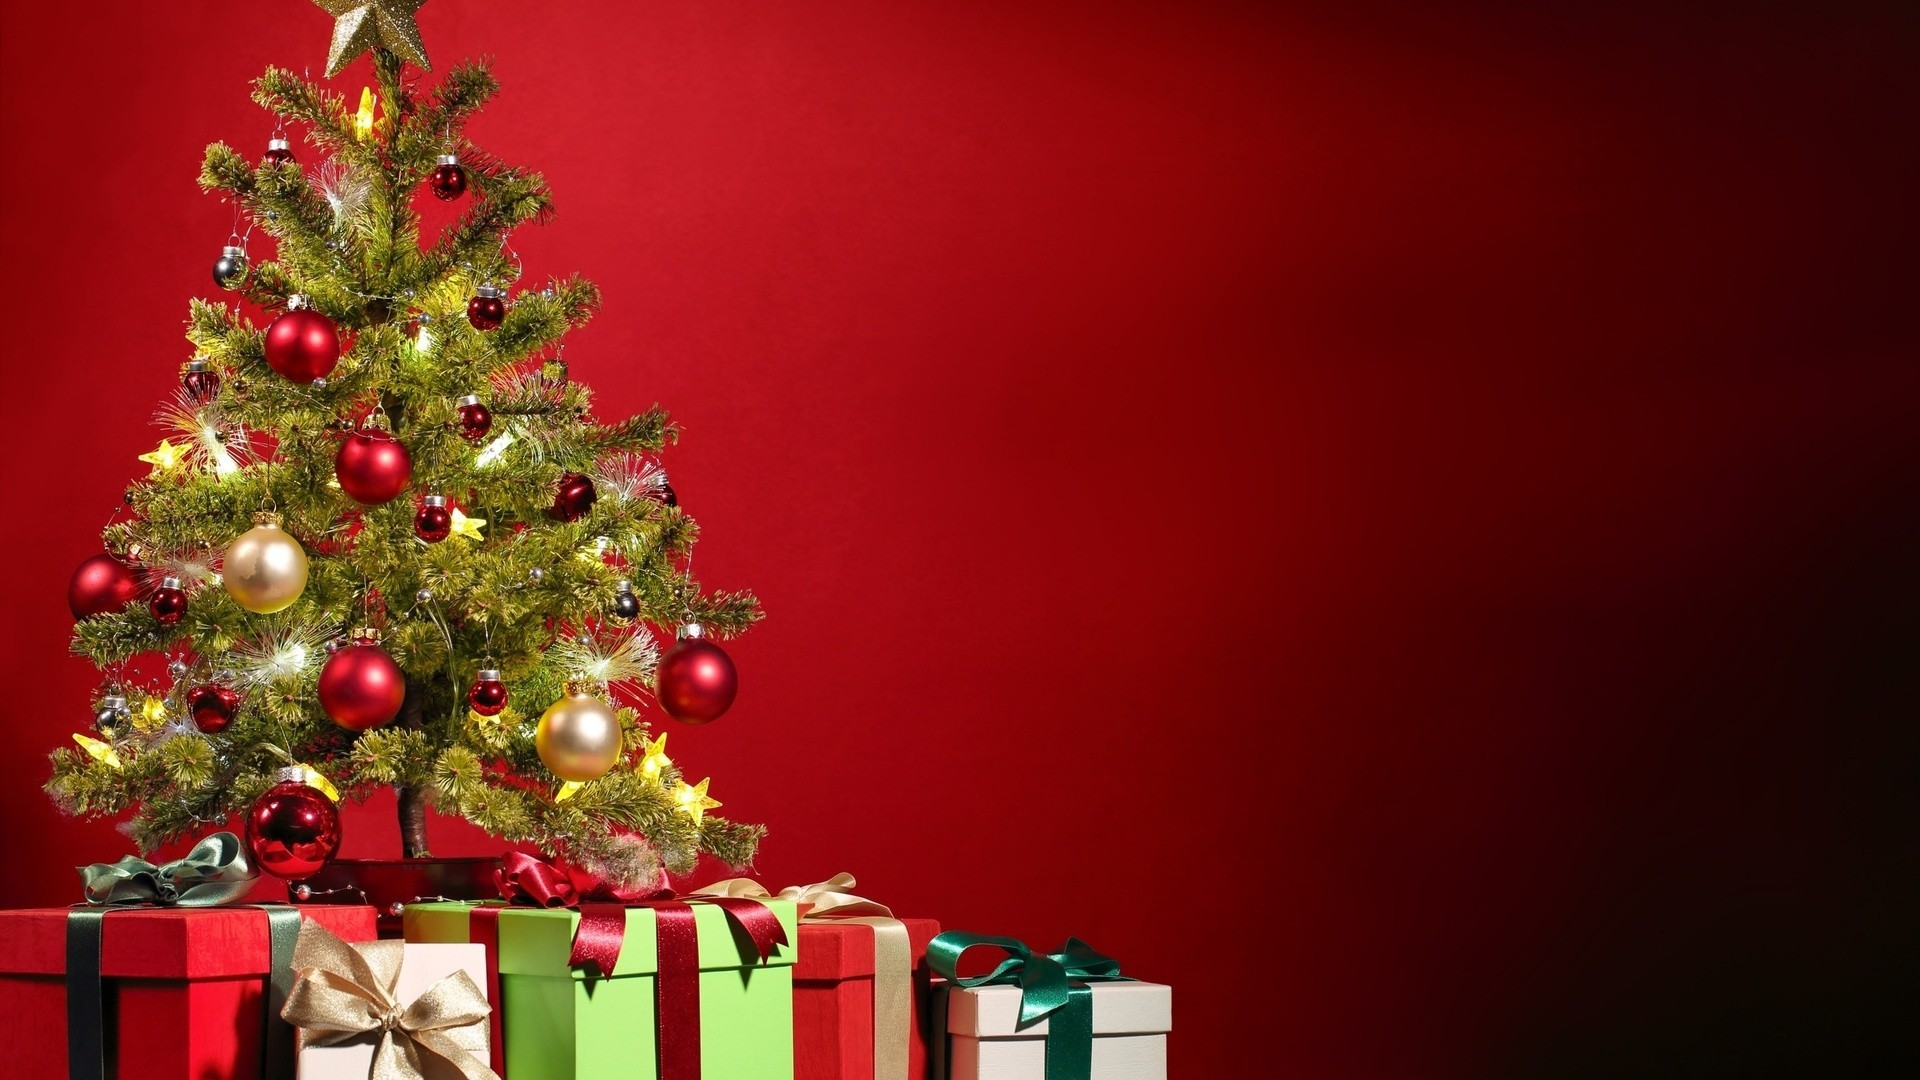 Free Christmas Wallpaper Backgrounds.Christmas Wallpaper Backgrounds 72 Pictures